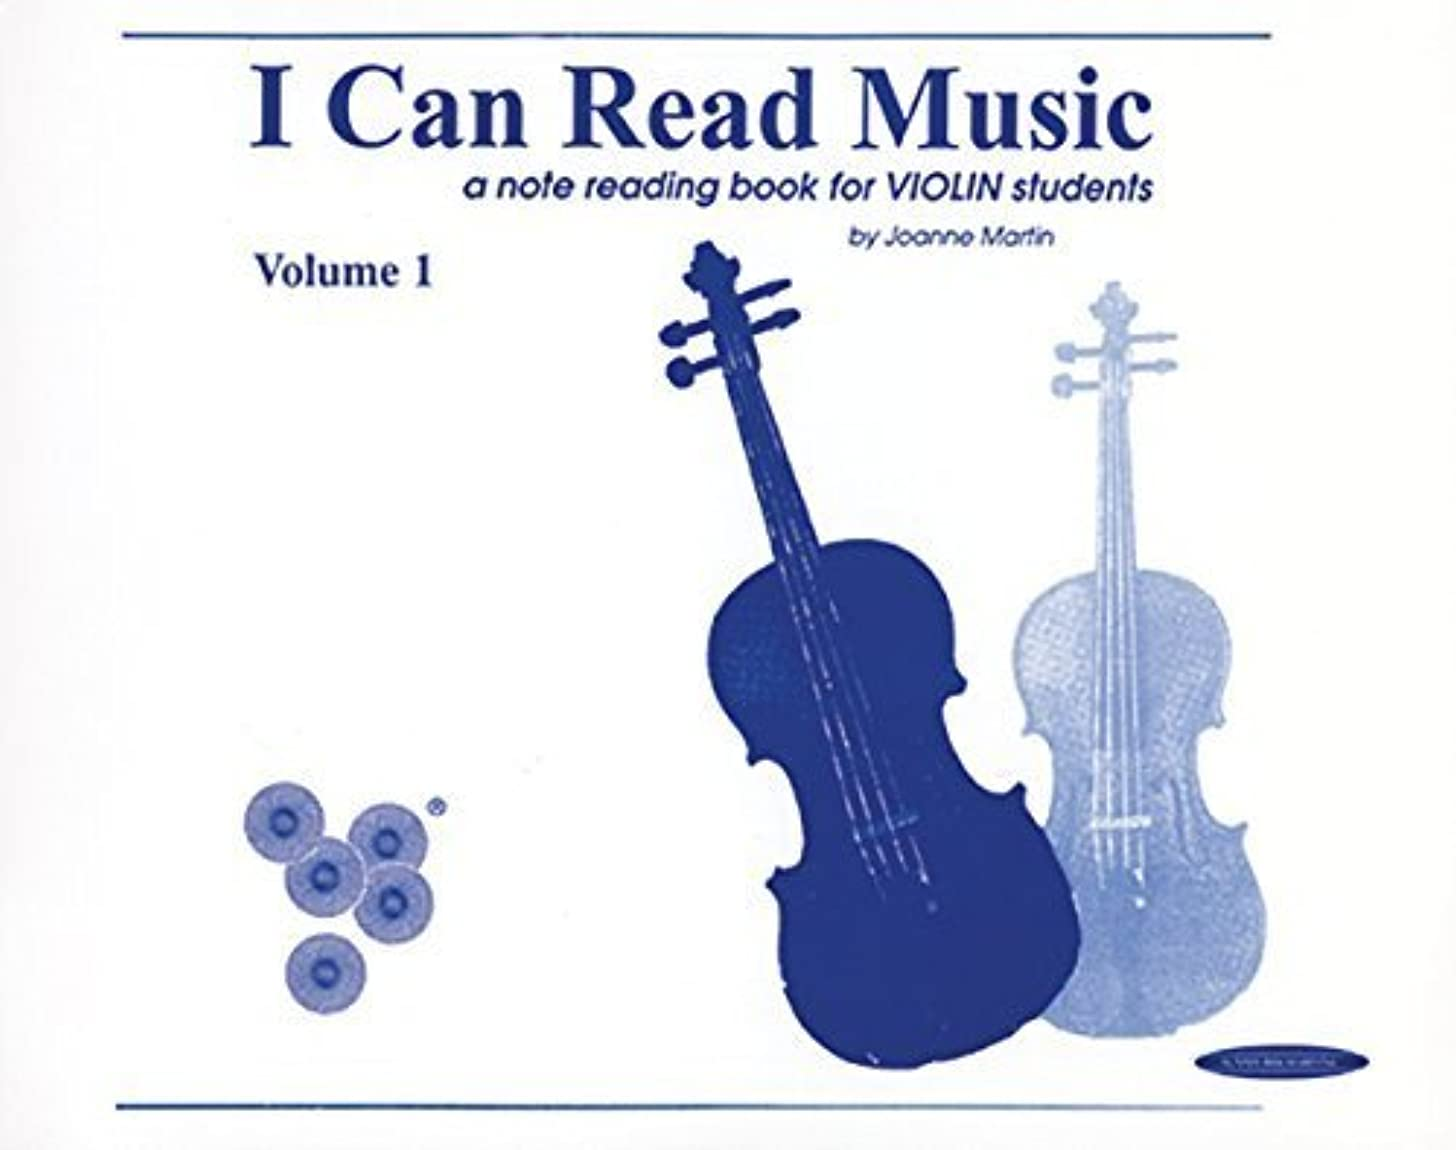 I Can Read Music: A Note Reading Book for Violin Students (Volume 1) by Martin, Joanne (1995) Spiral-bound